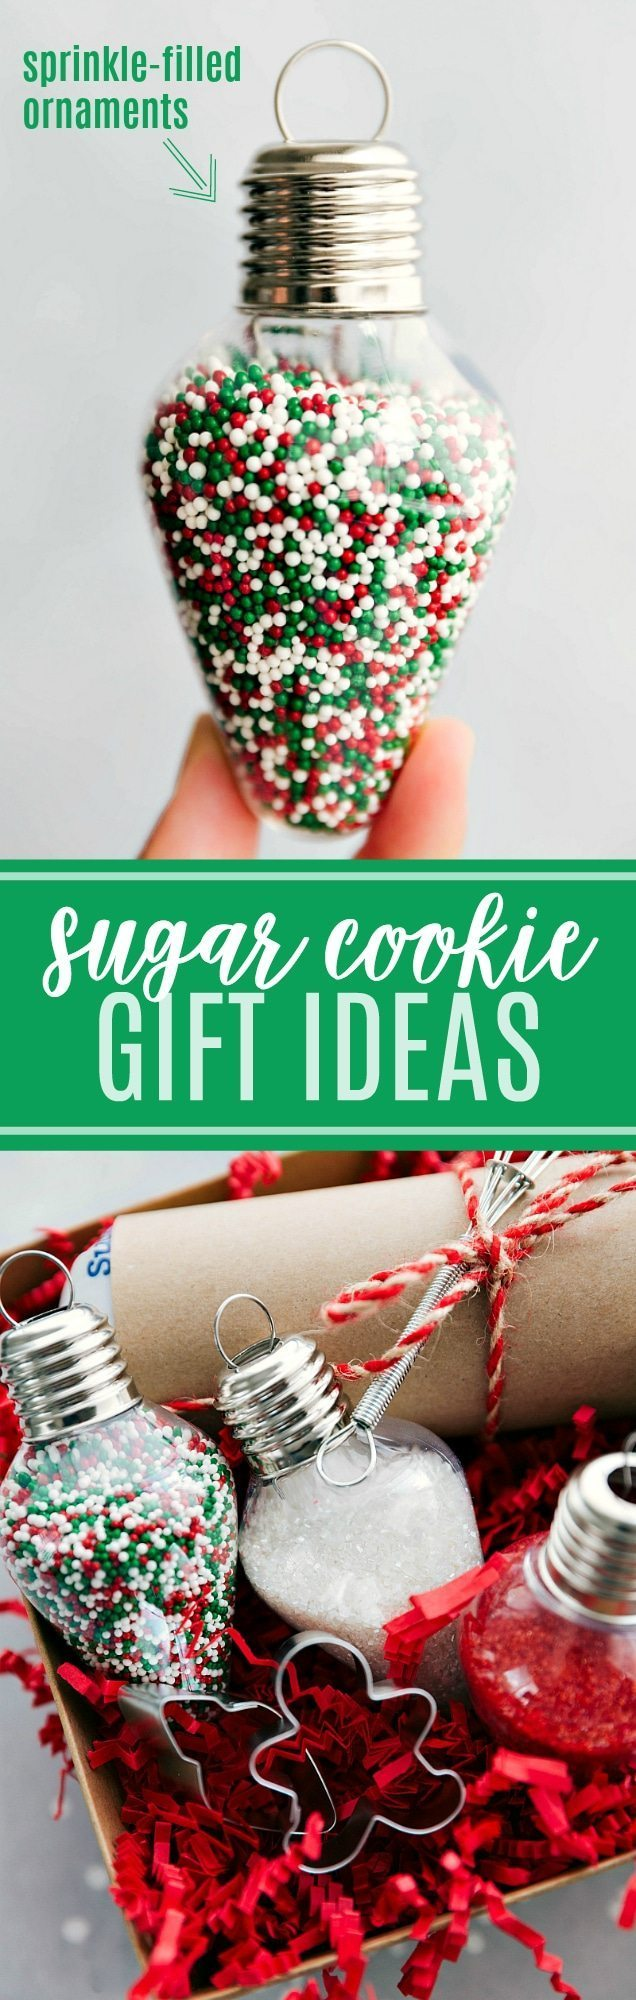 Tons of fun ideas for SUGAR COOKIE KITS. Great and simple gifts! Fill up small ornaments with sprinkles and gift them with some sugar cookie dough! via chelseasmessyapron.com